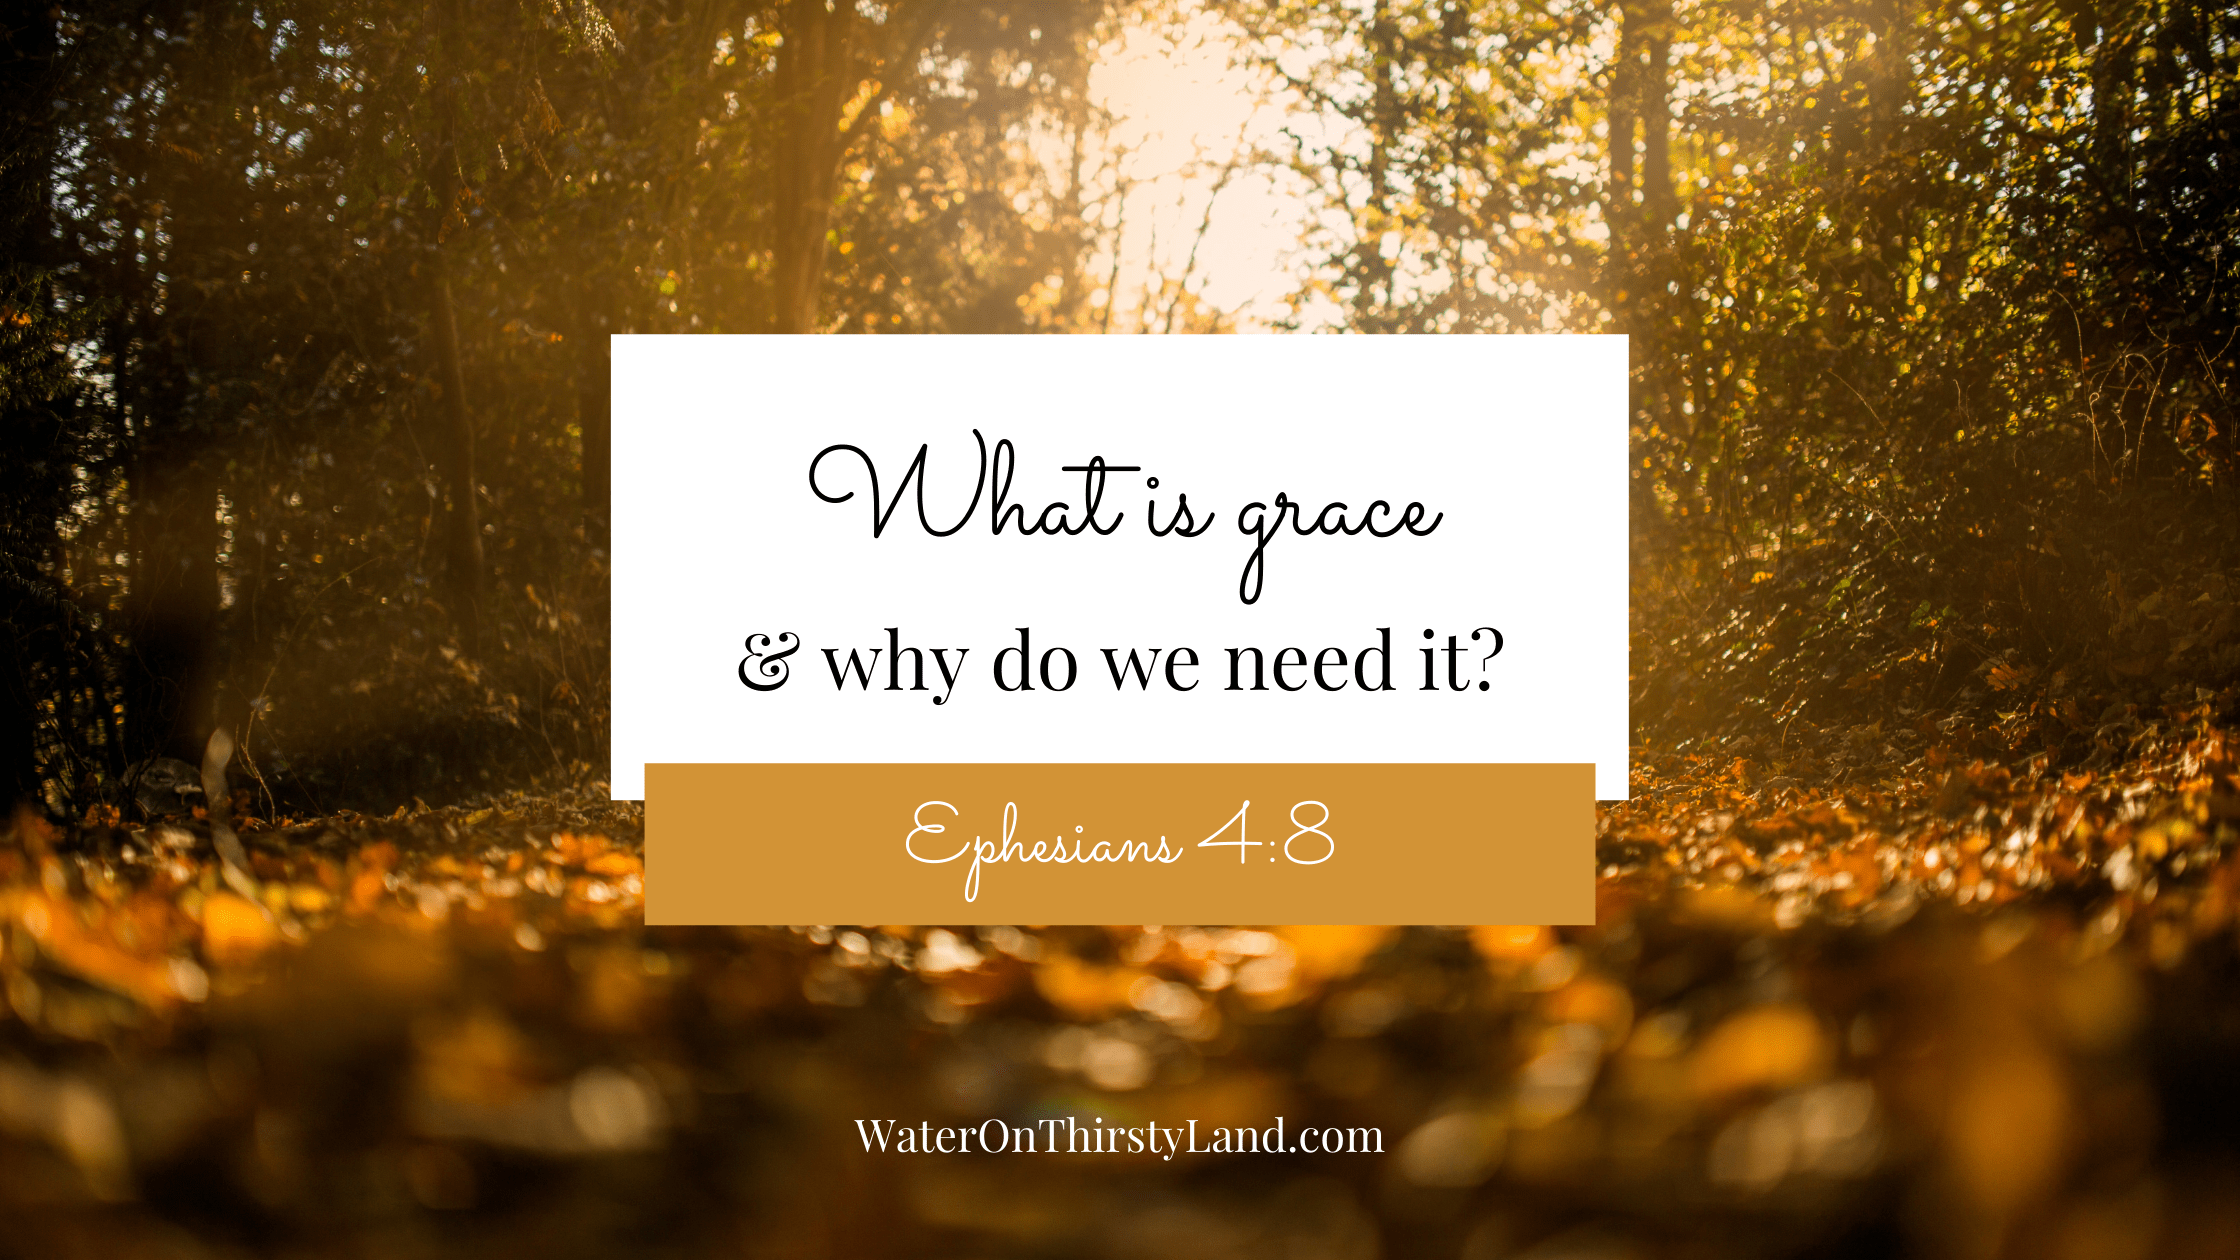 What is grace & why do we need it?